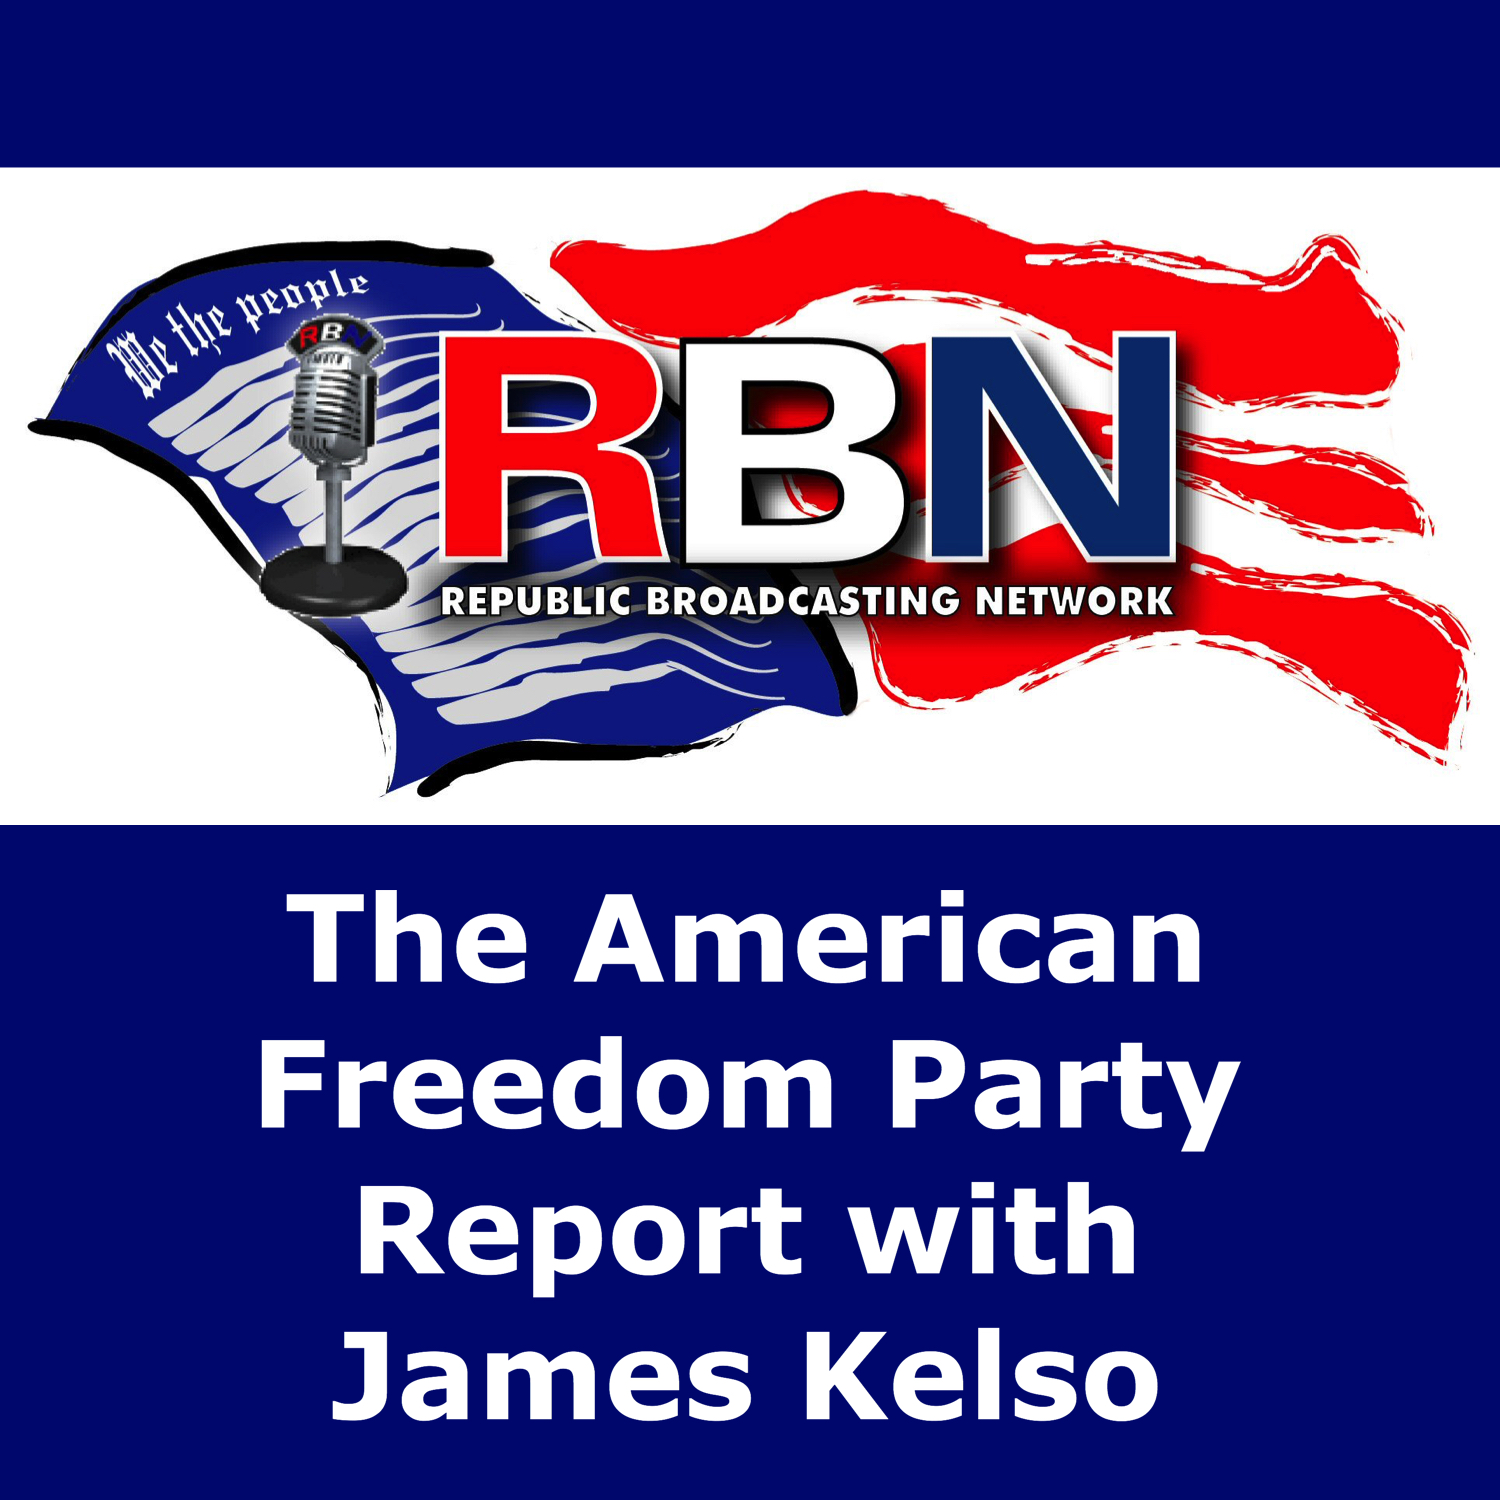 the american freedom The story of american freedom has 497 ratings and 21 reviews teri said: this is a concise review of american history, particularly looking at the theme.